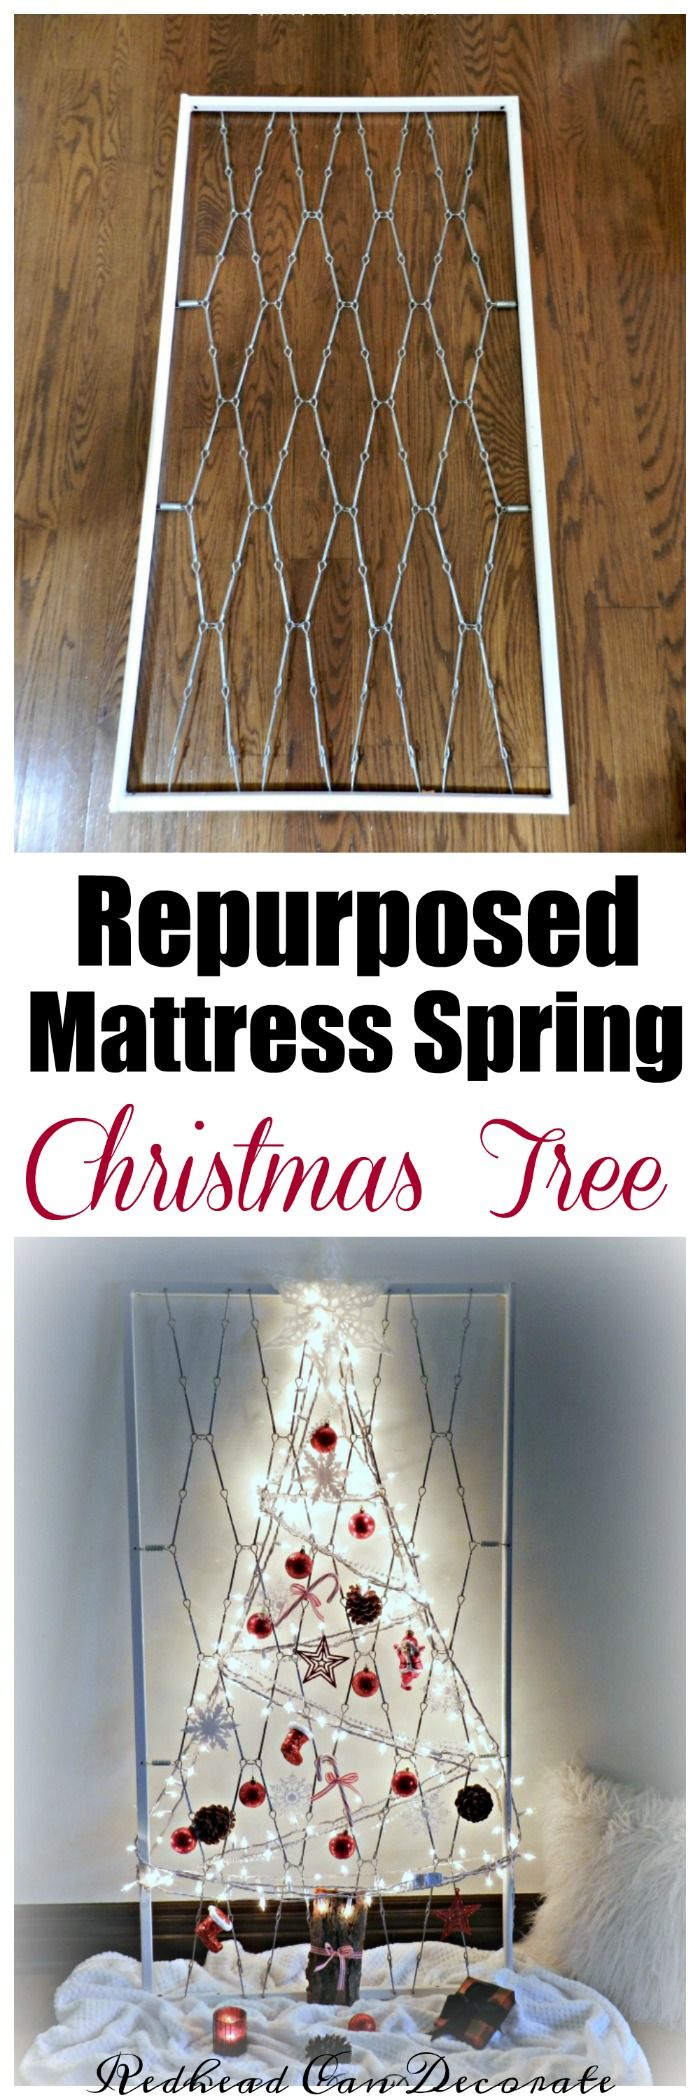 Hometalk diy christmas window decoration - Crib Mattress Spring Christmas Tree